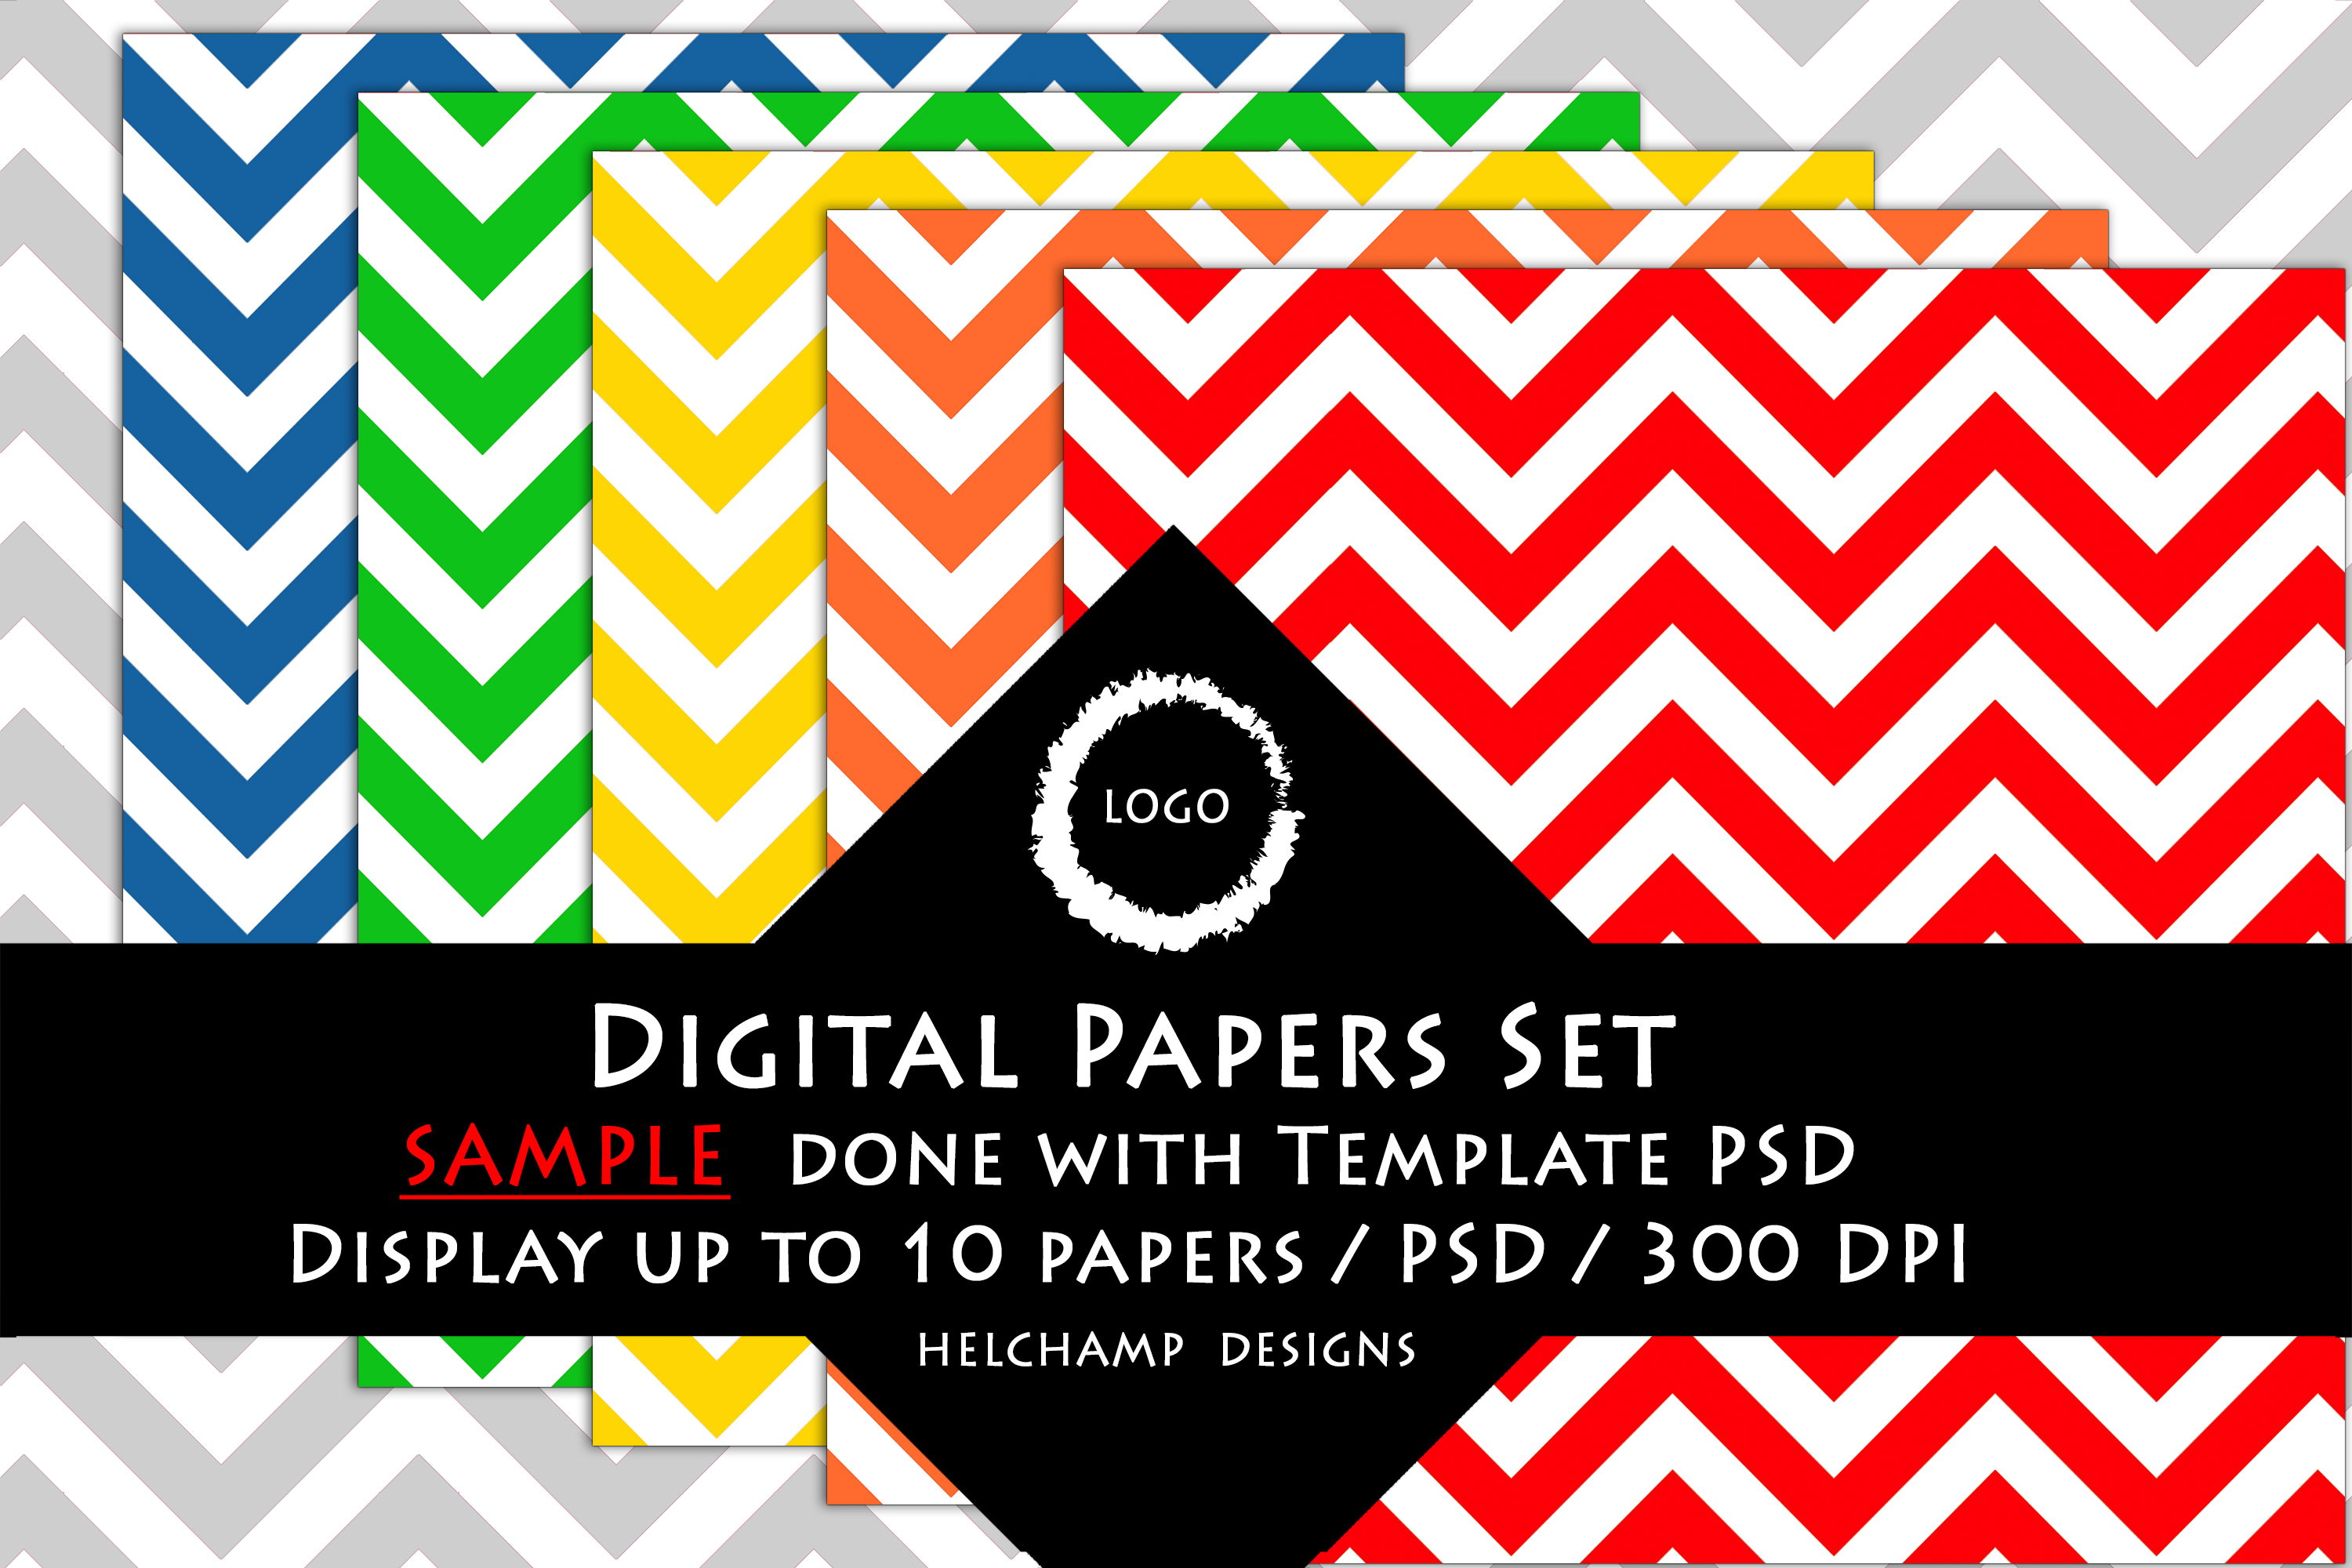 1 to 10 Panels Mockup for Digital Papers - M04 example image 5